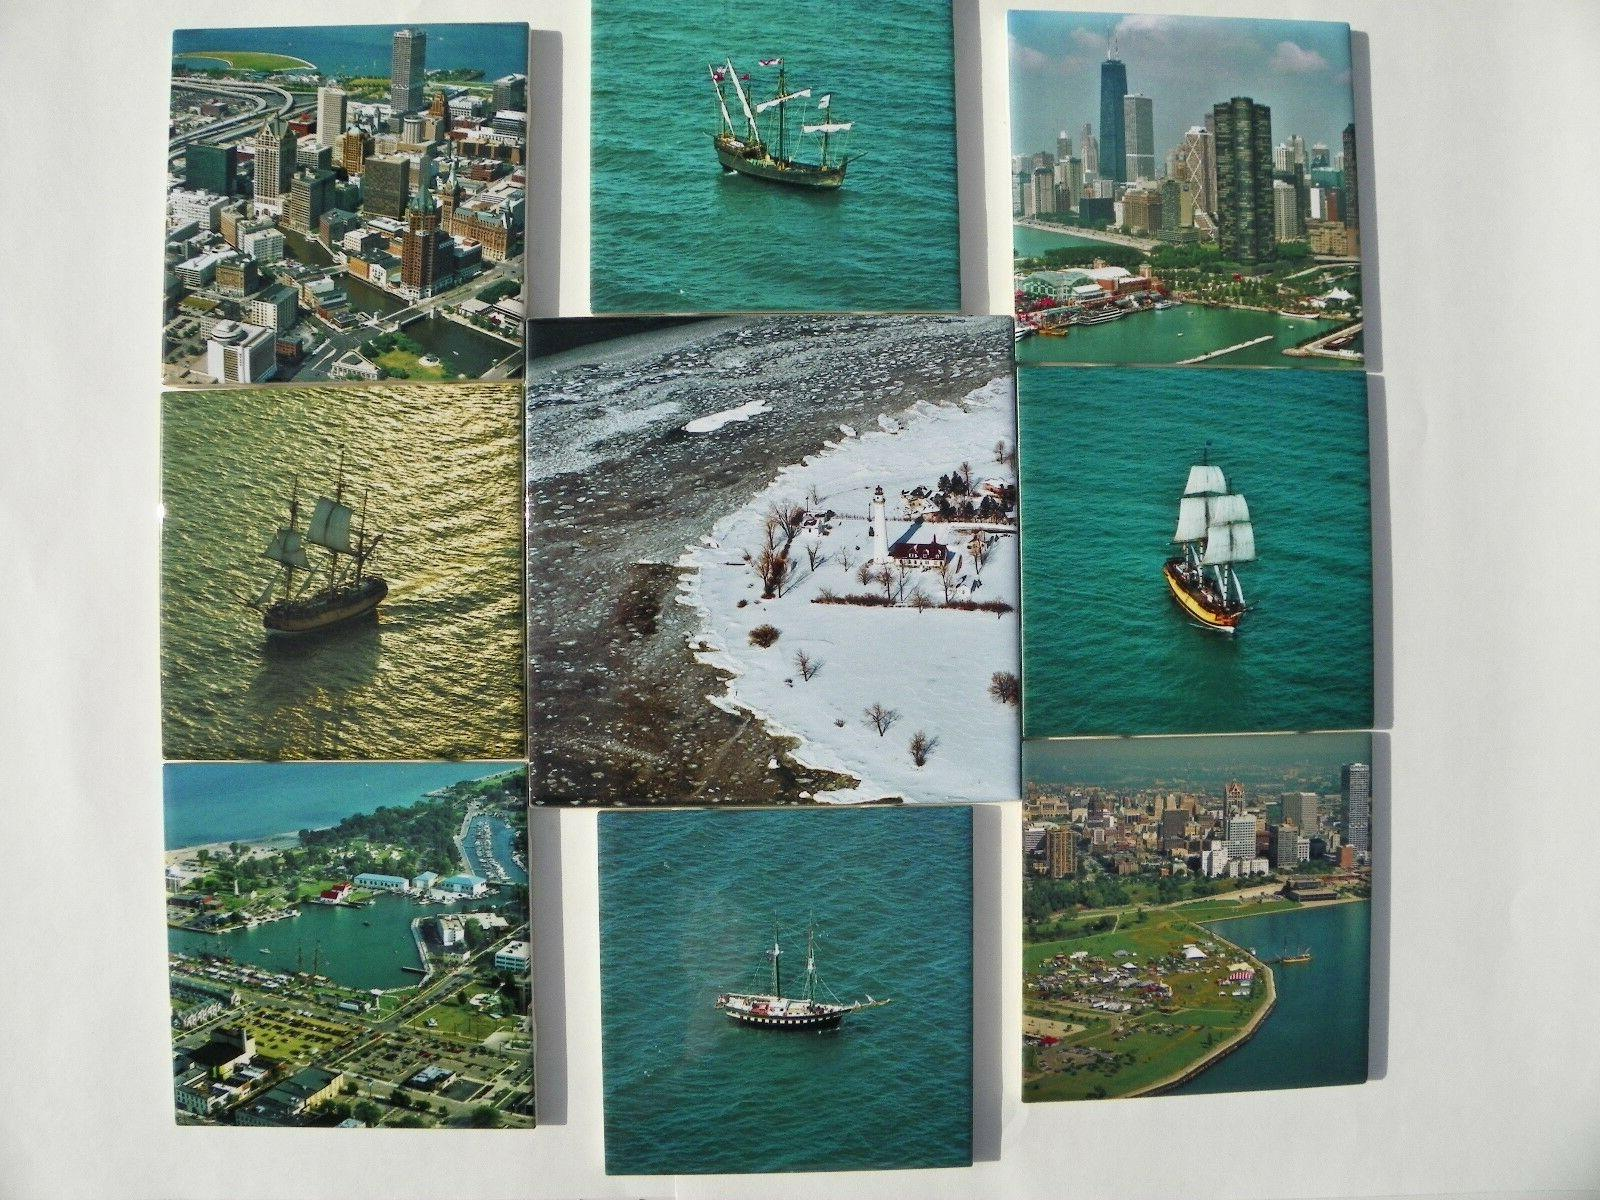 Ceramic Photo Tiles Tall Ships Gifts Sylvester